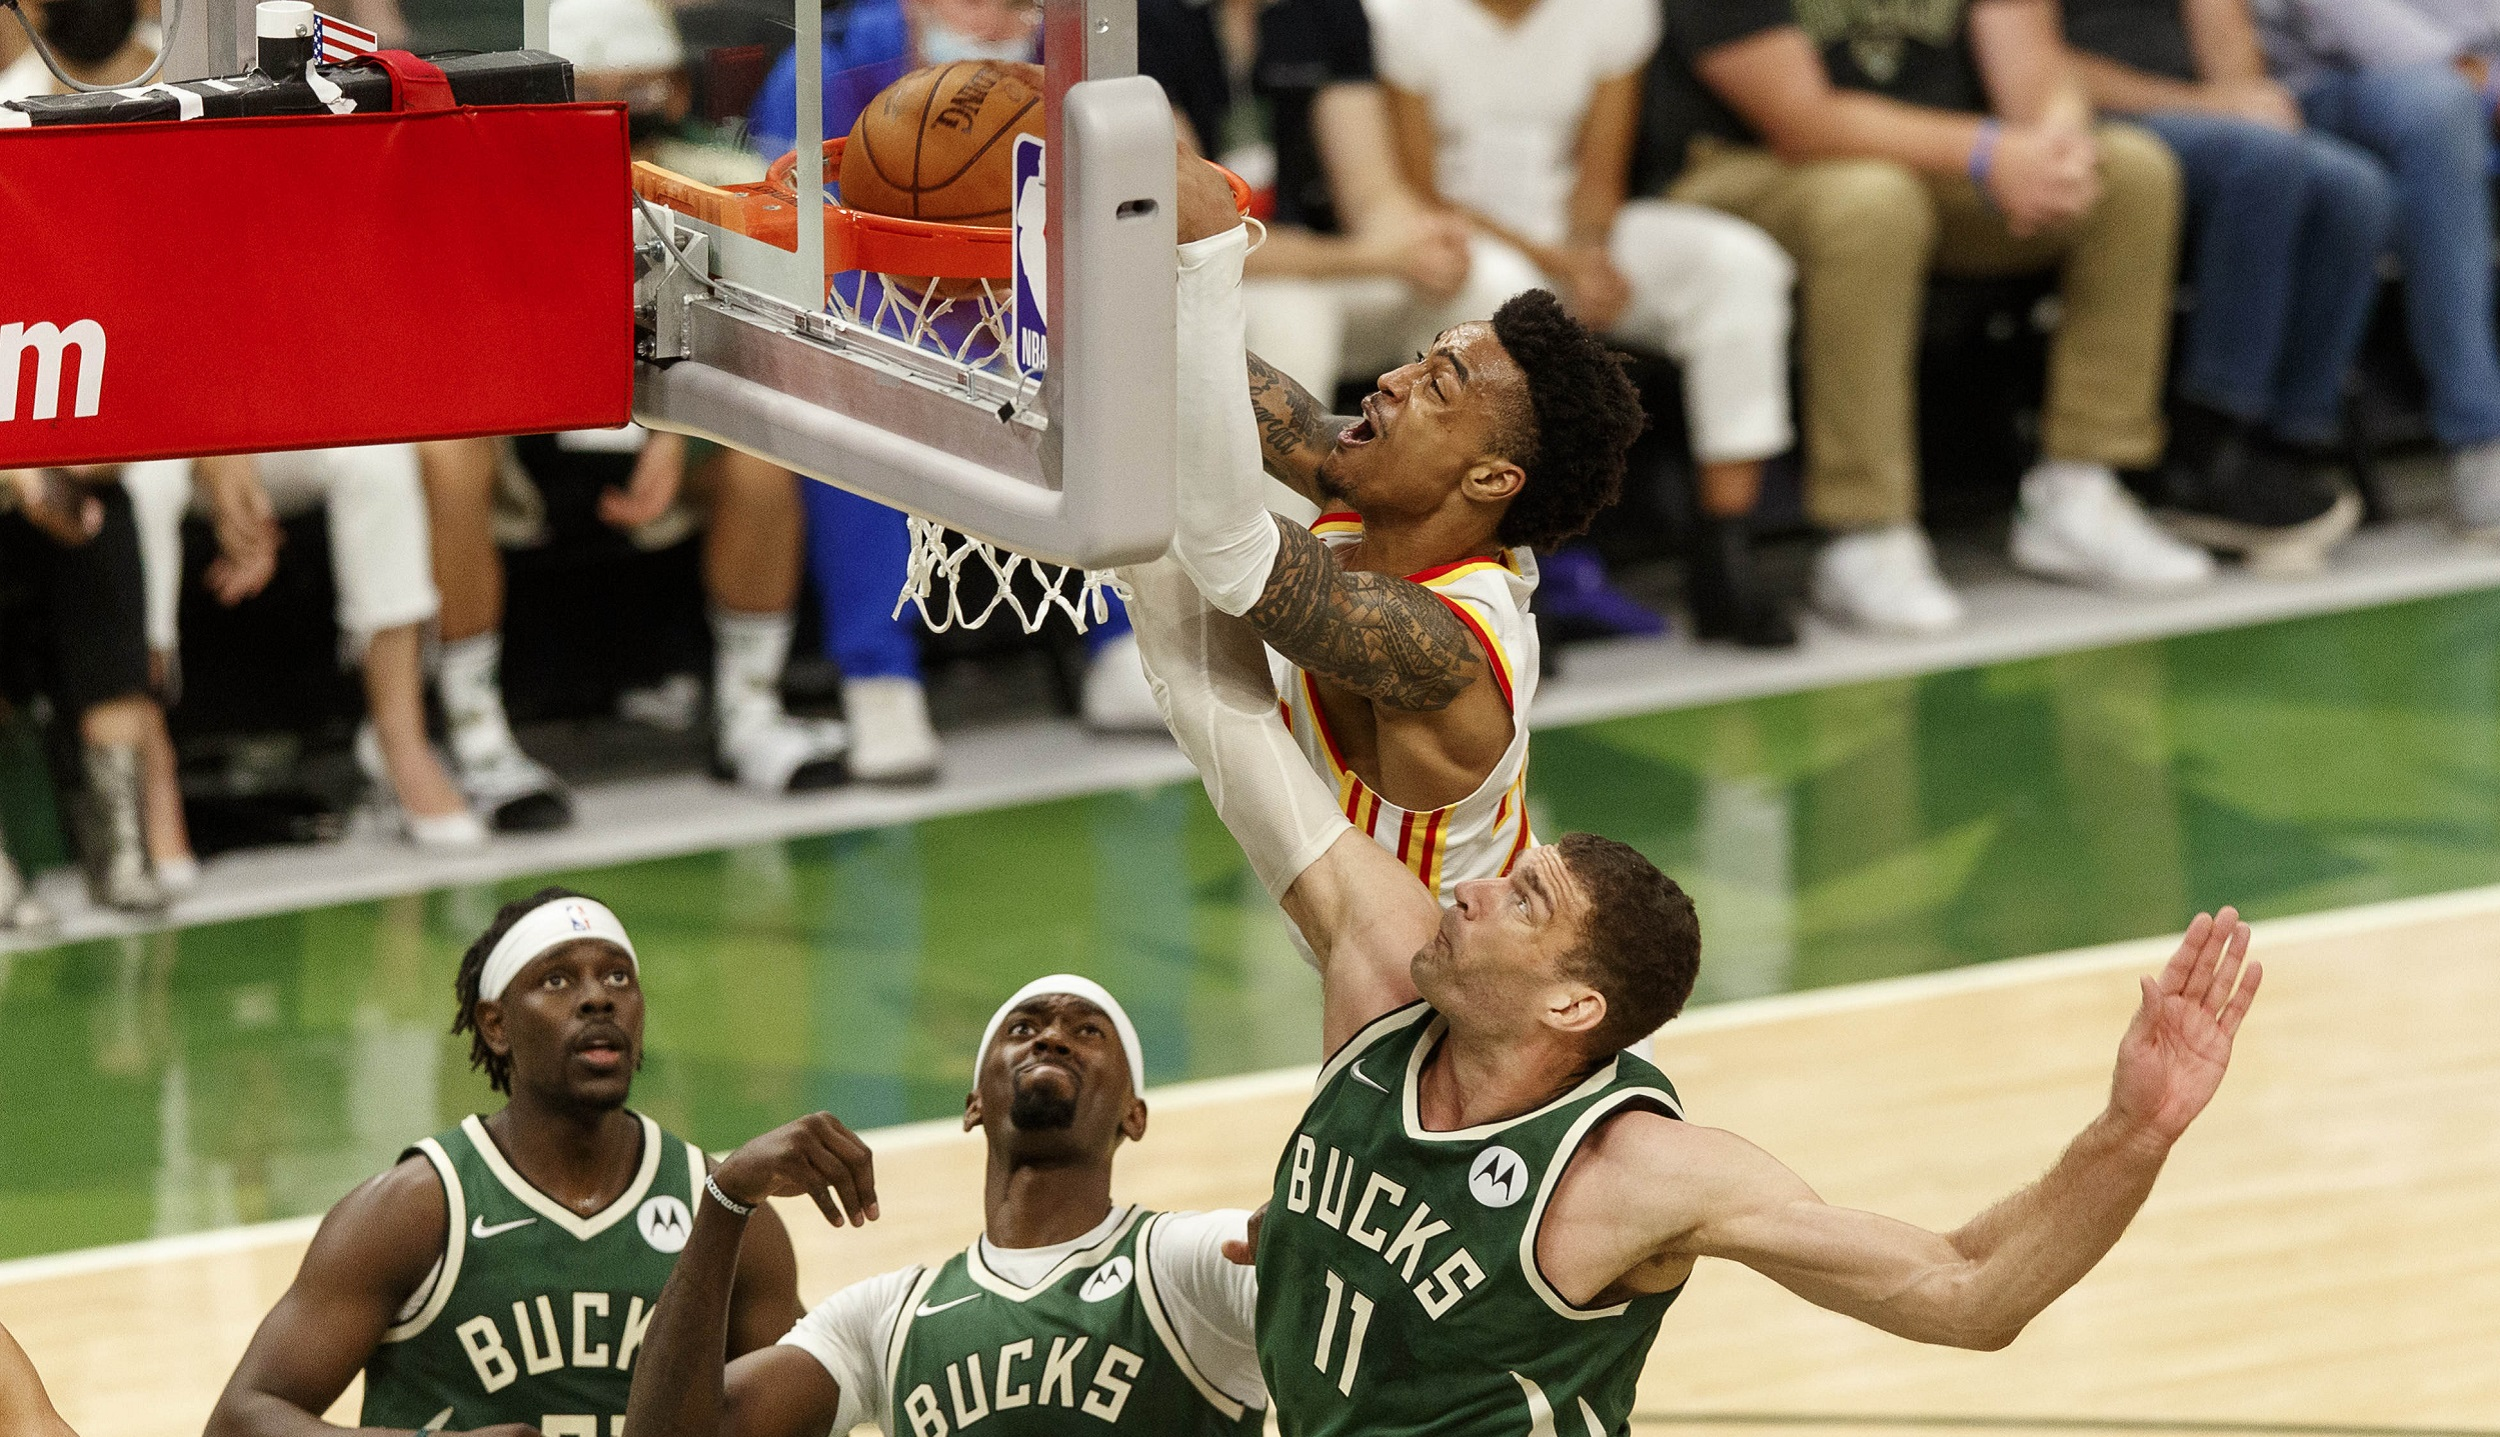 Top Dunks of the Conference Finals